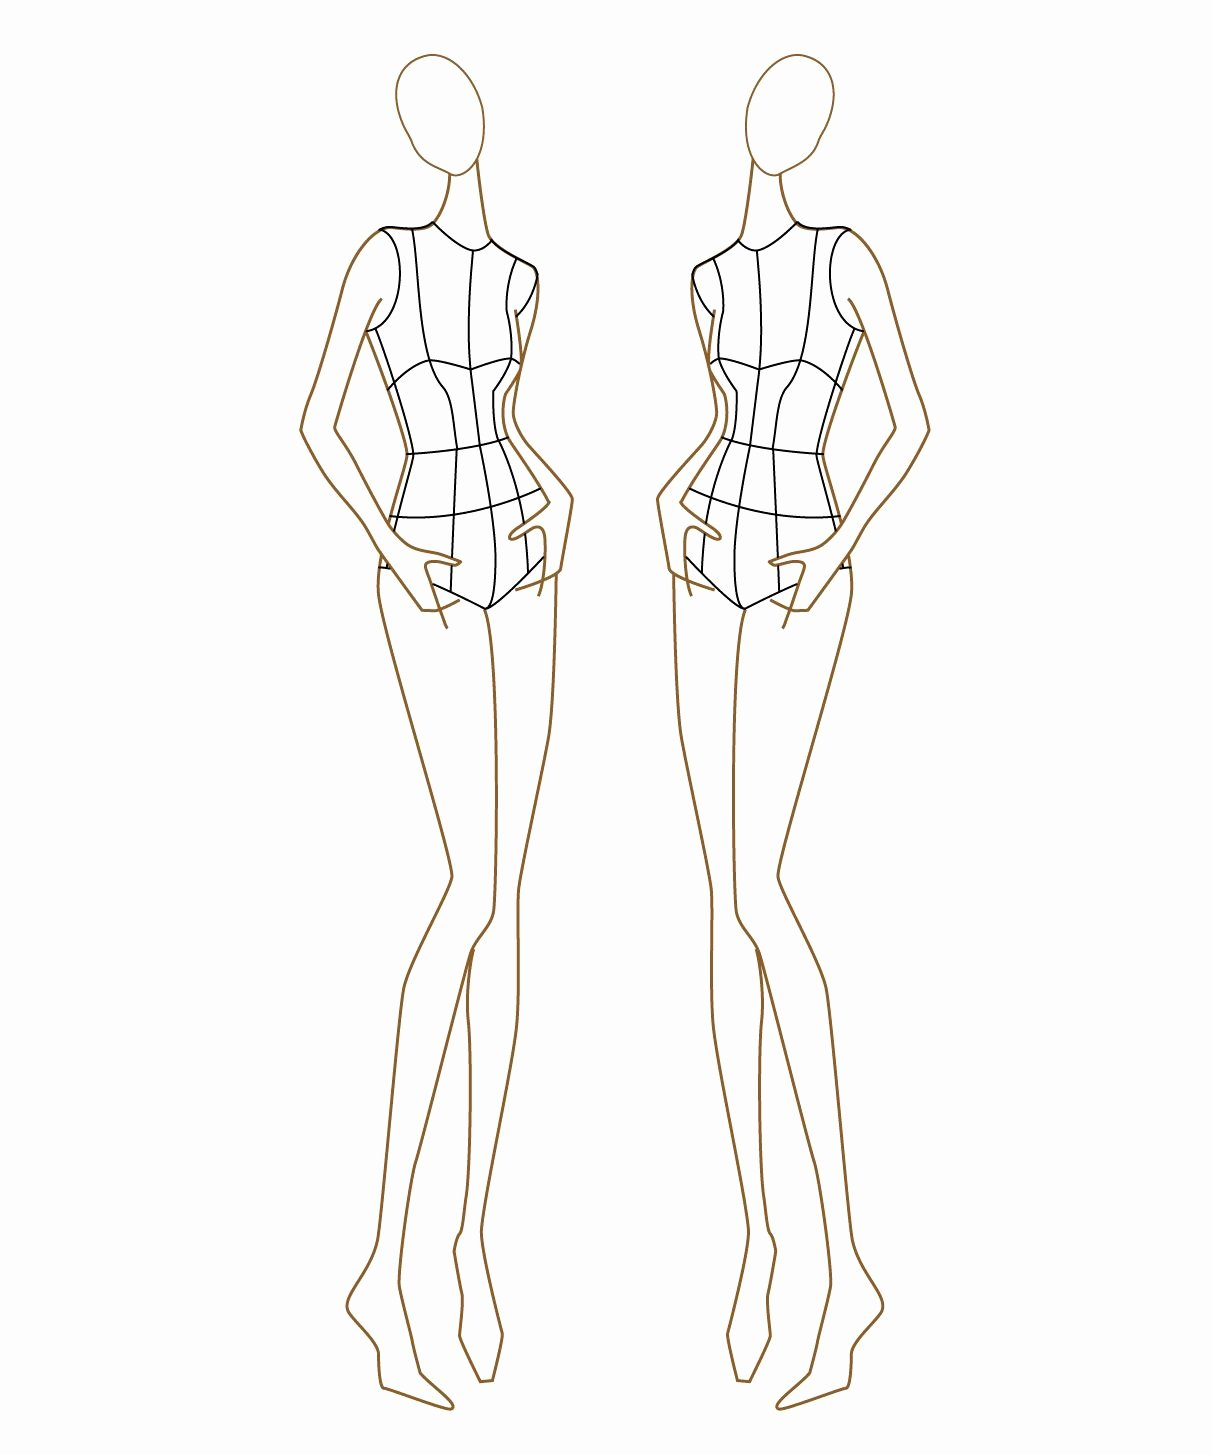 Model Sketch Template Awesome Figure for Fashion Illustration Templates